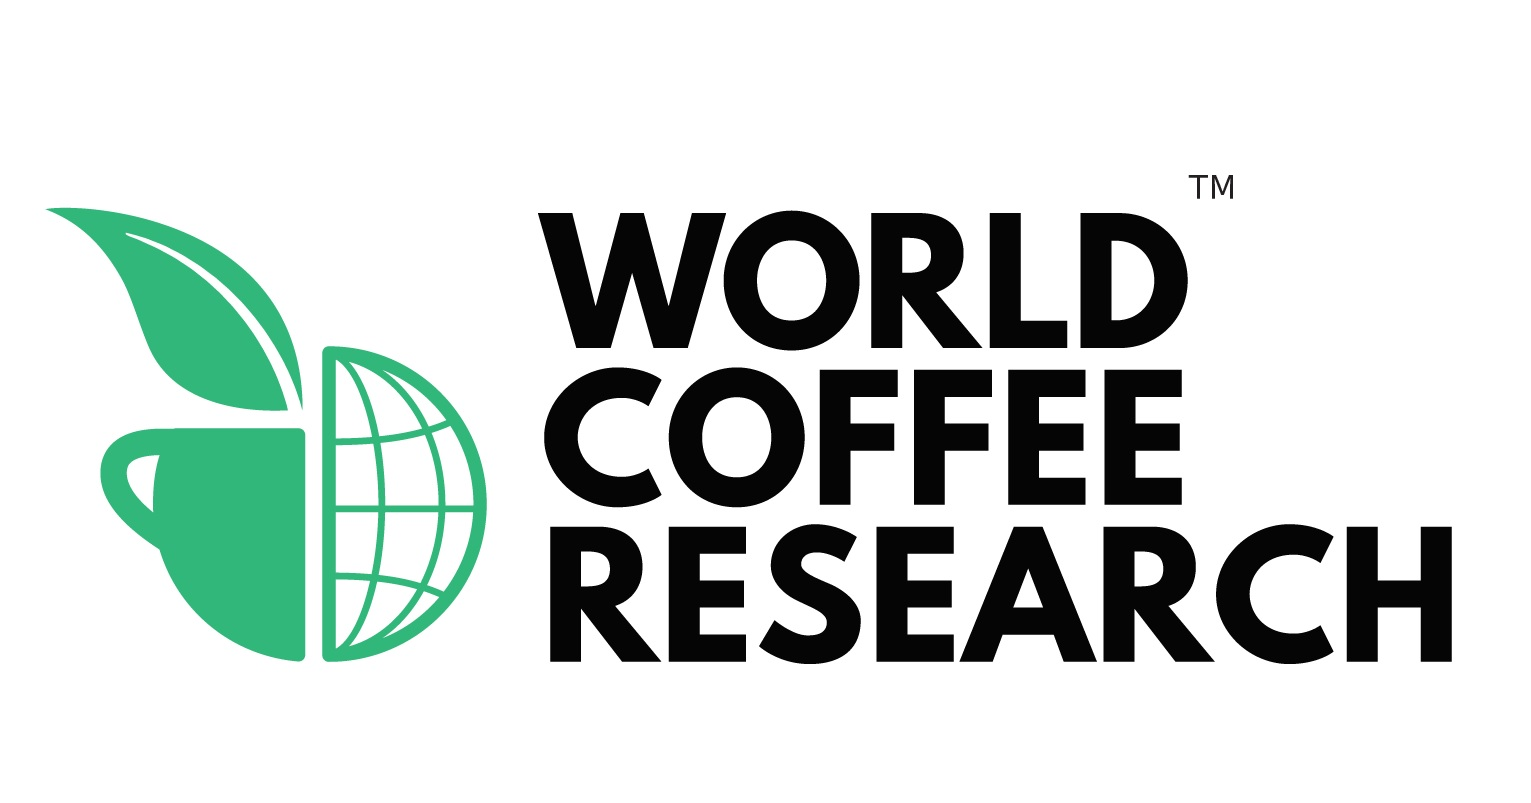 Support World Coffee Research - This Side Up is a proud member of World Coffee Research. You can be sure that by adding a small contribution to your coffee order, you're supporting the future of your favourite shrub.